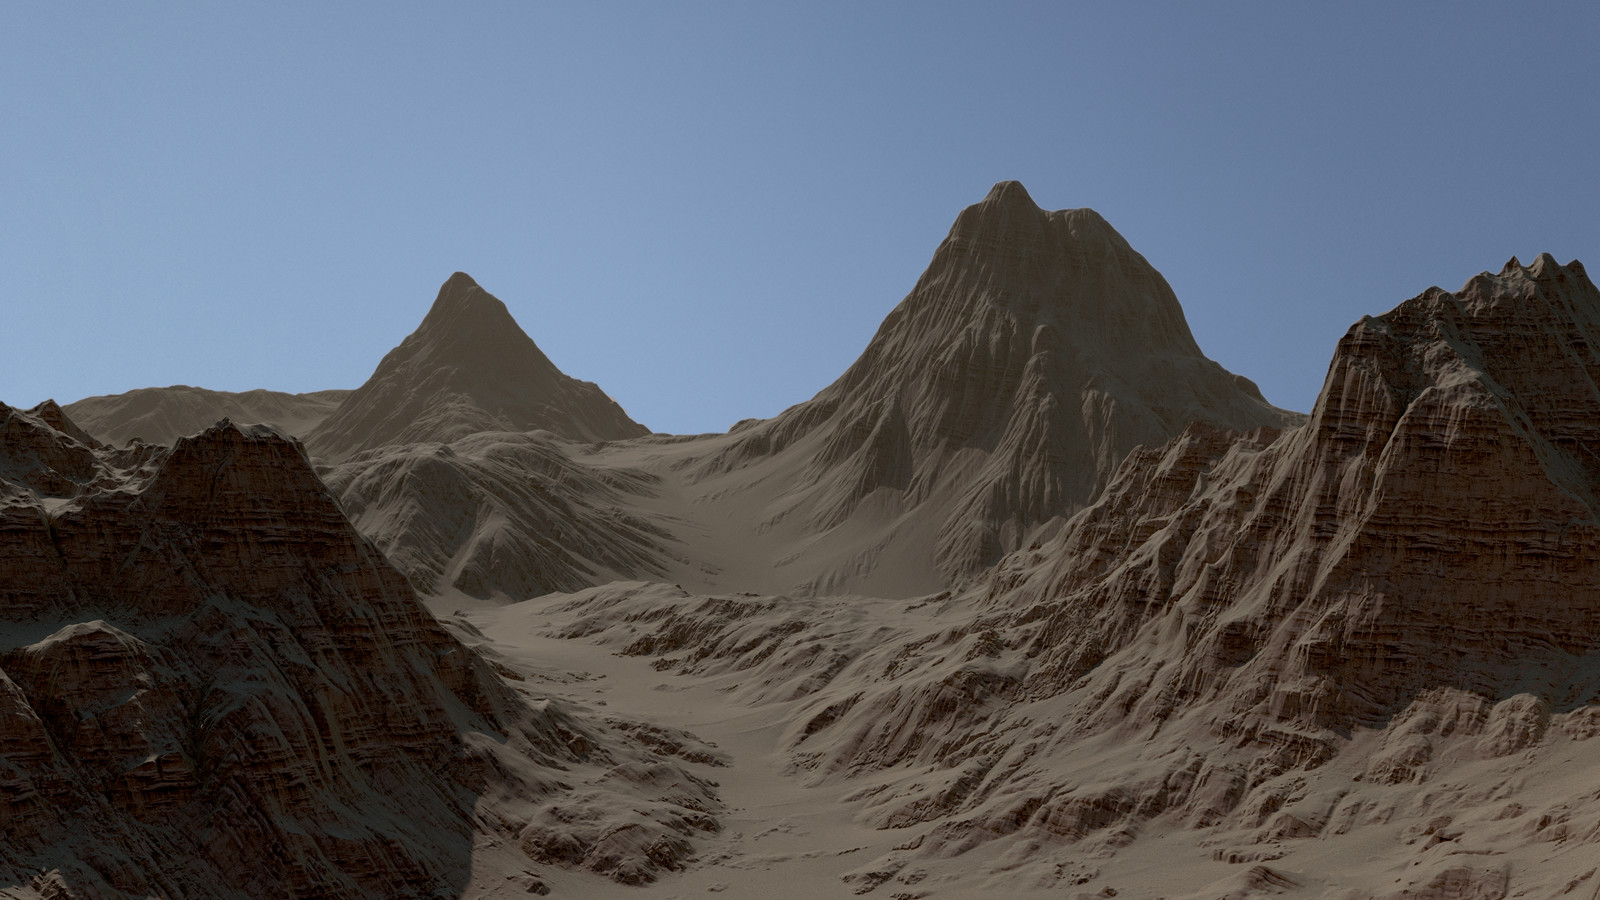 Another Dunes